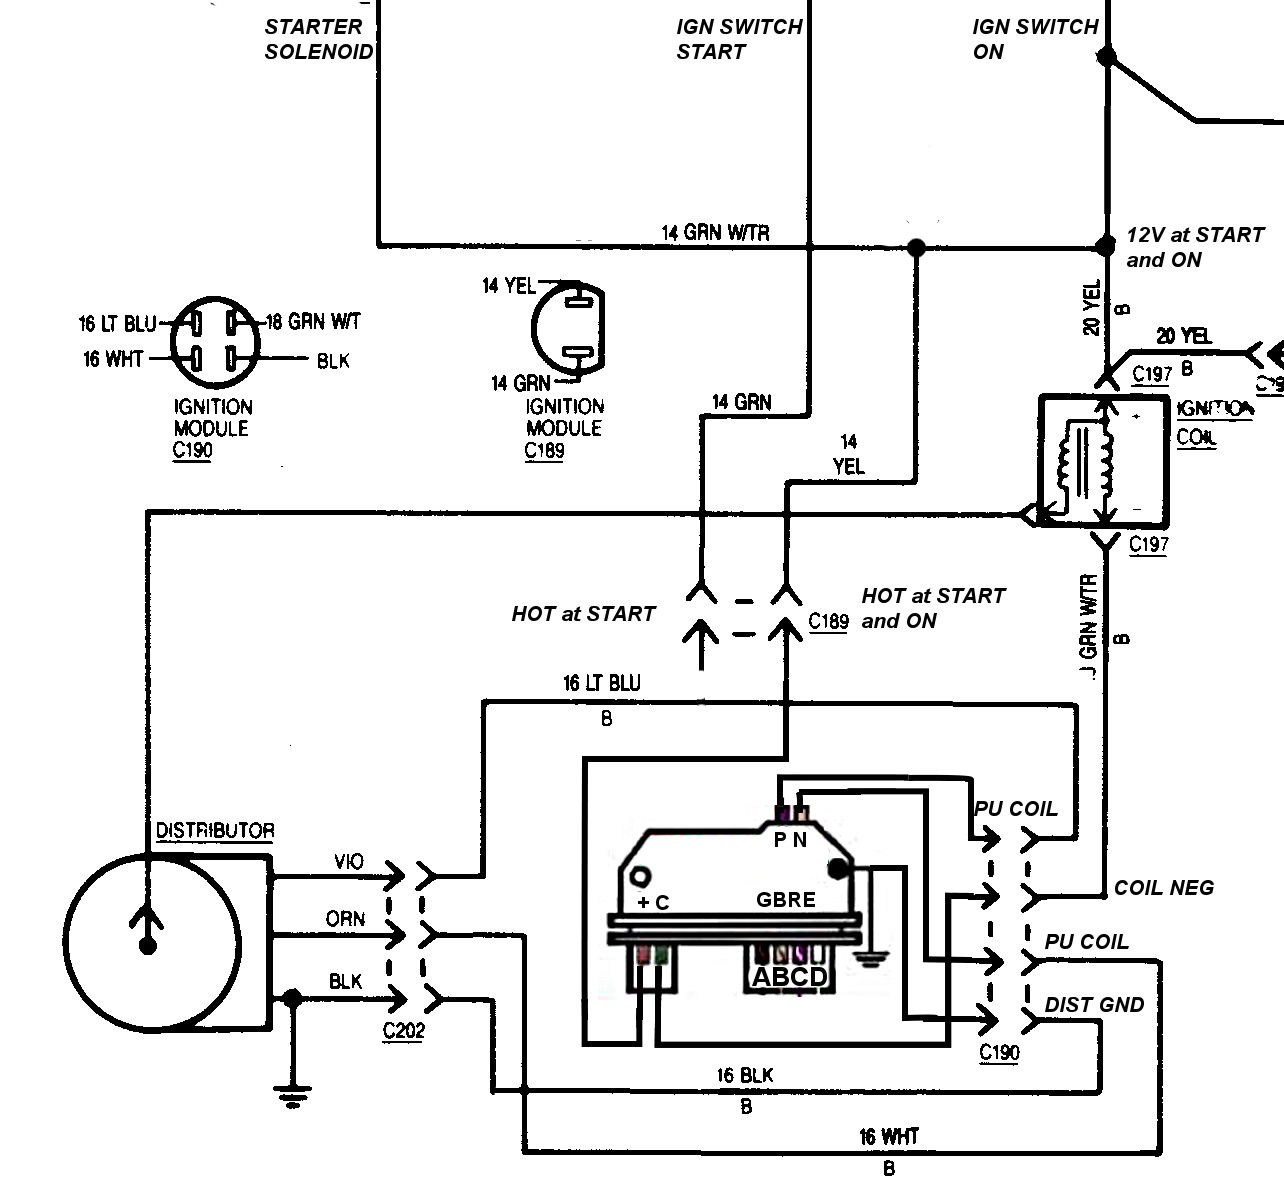 TBI+Wiring+1 duraspark wiring diagram duraspark 2 wiring diagram \u2022 free wiring ford 302 wiring diagram at n-0.co